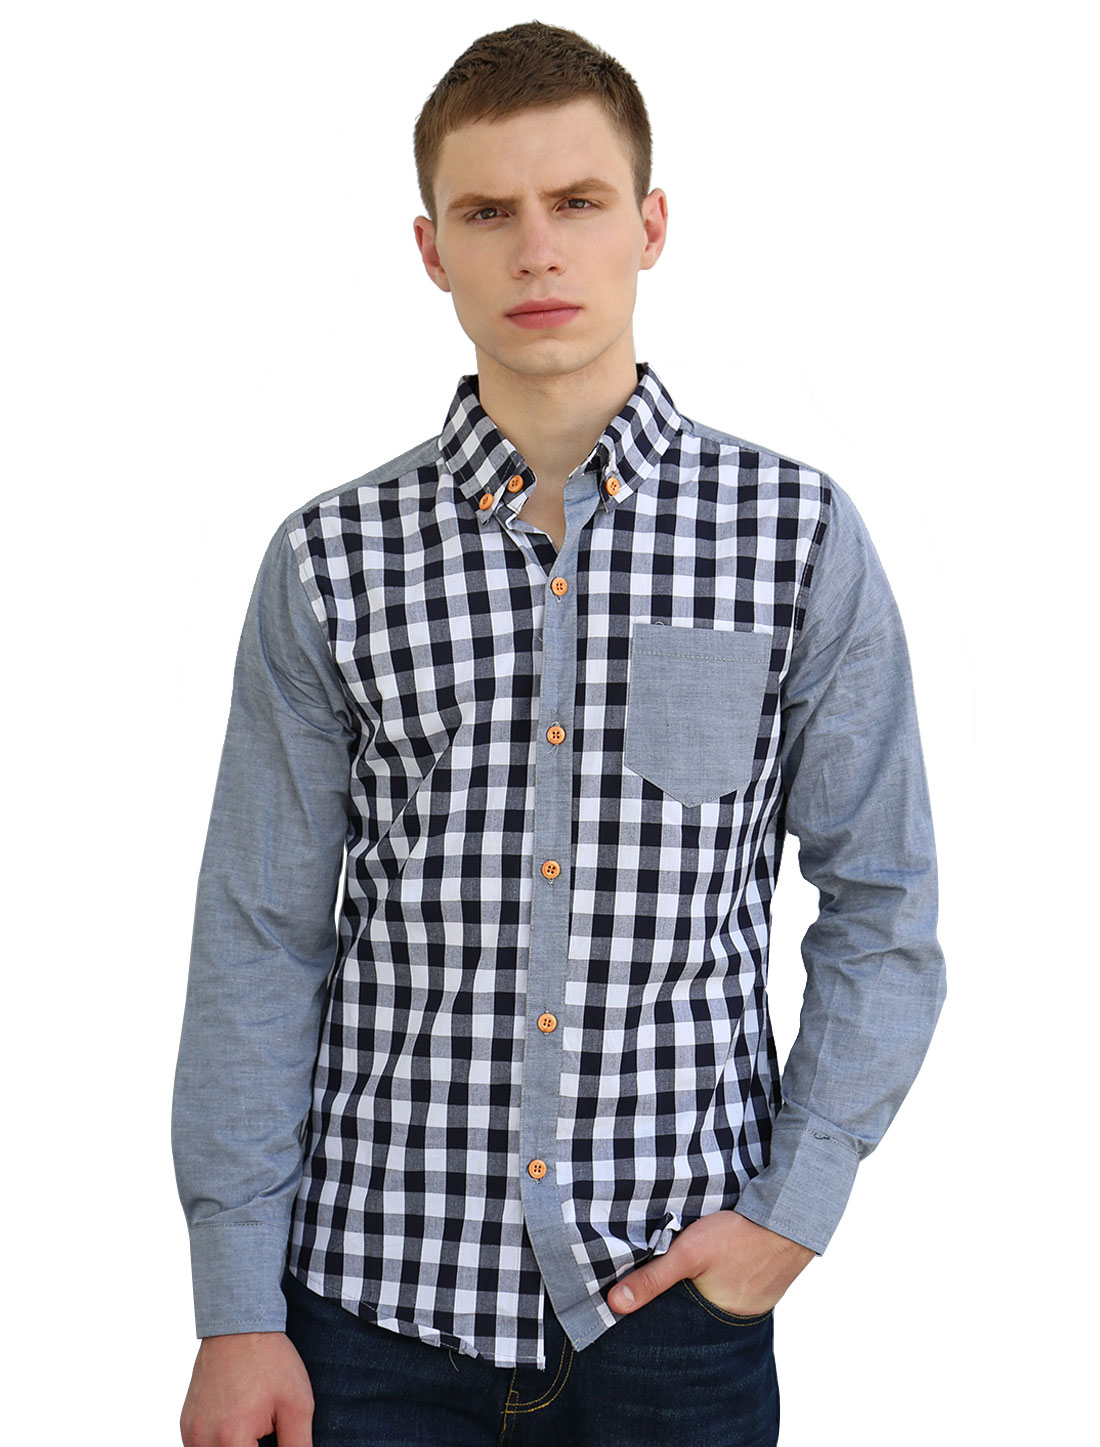 Men Button-Collar Single Breasted Patch Chest Pocket Plaid Shirt Light Gray M